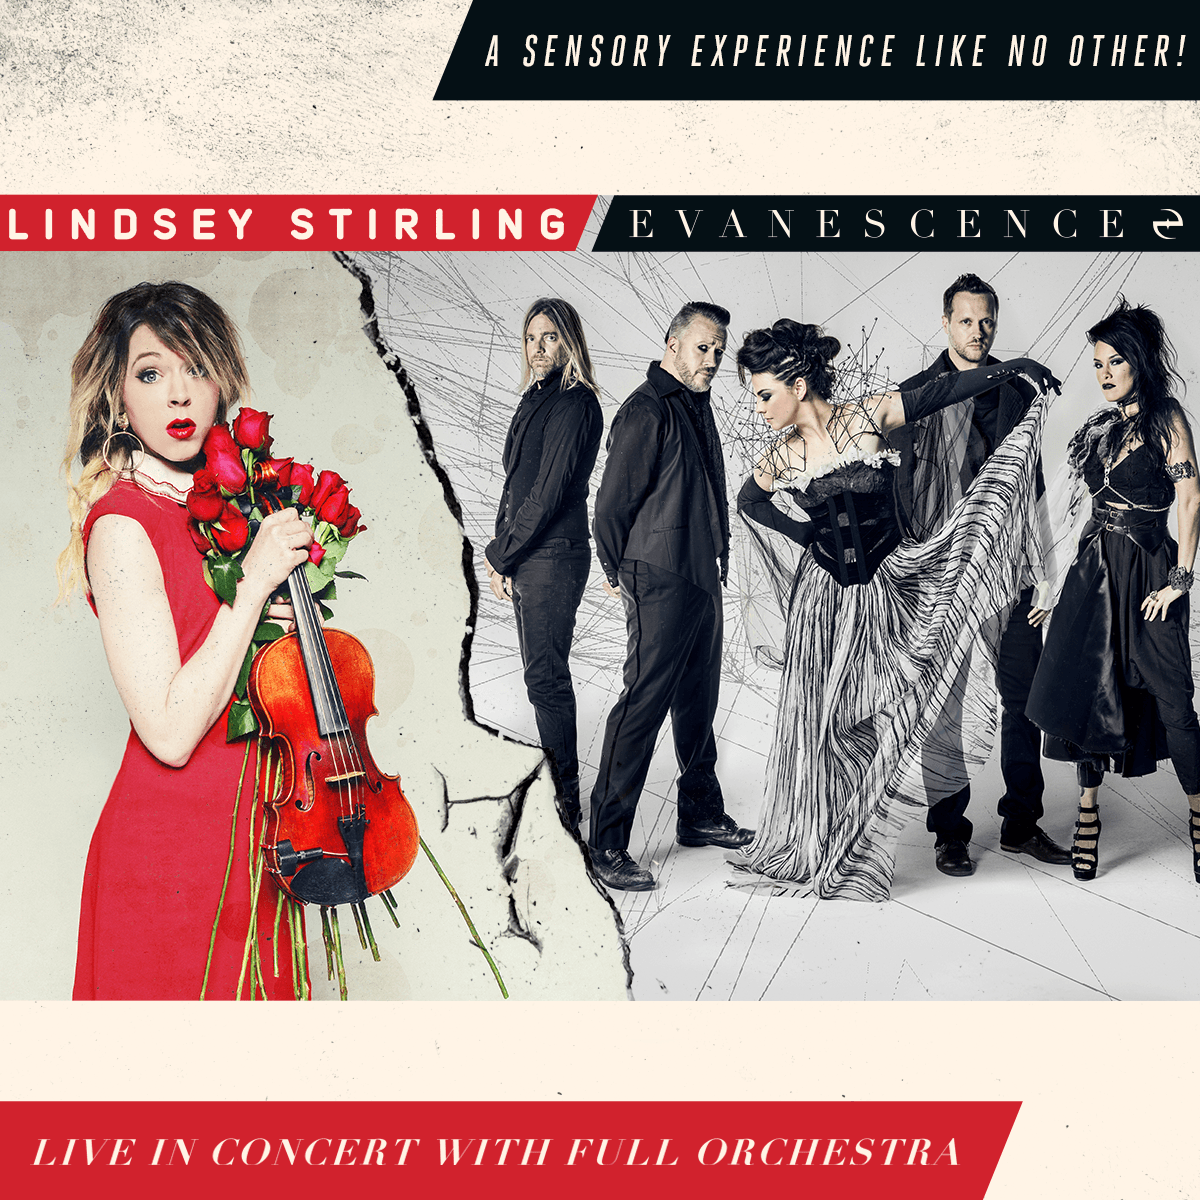 lindsey stirling and evanescence